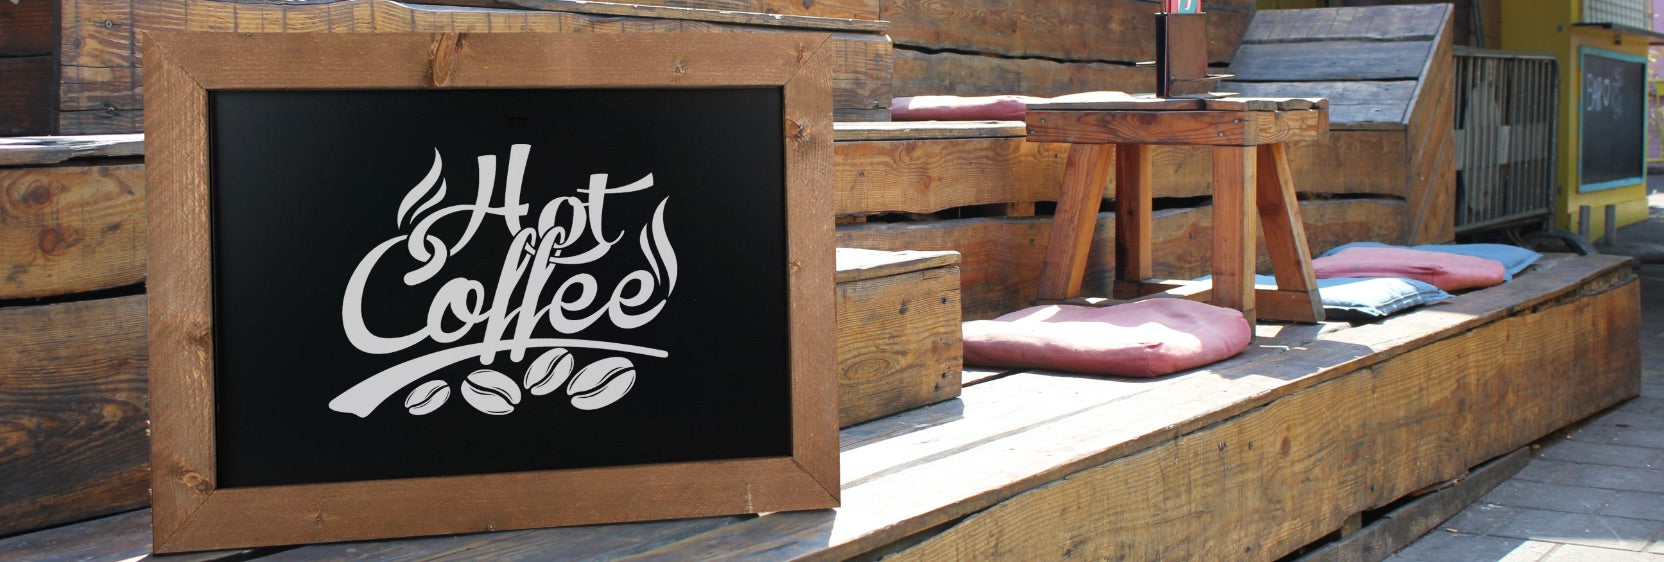 40 x 100cm Chalkboards at display-sign.co.uk